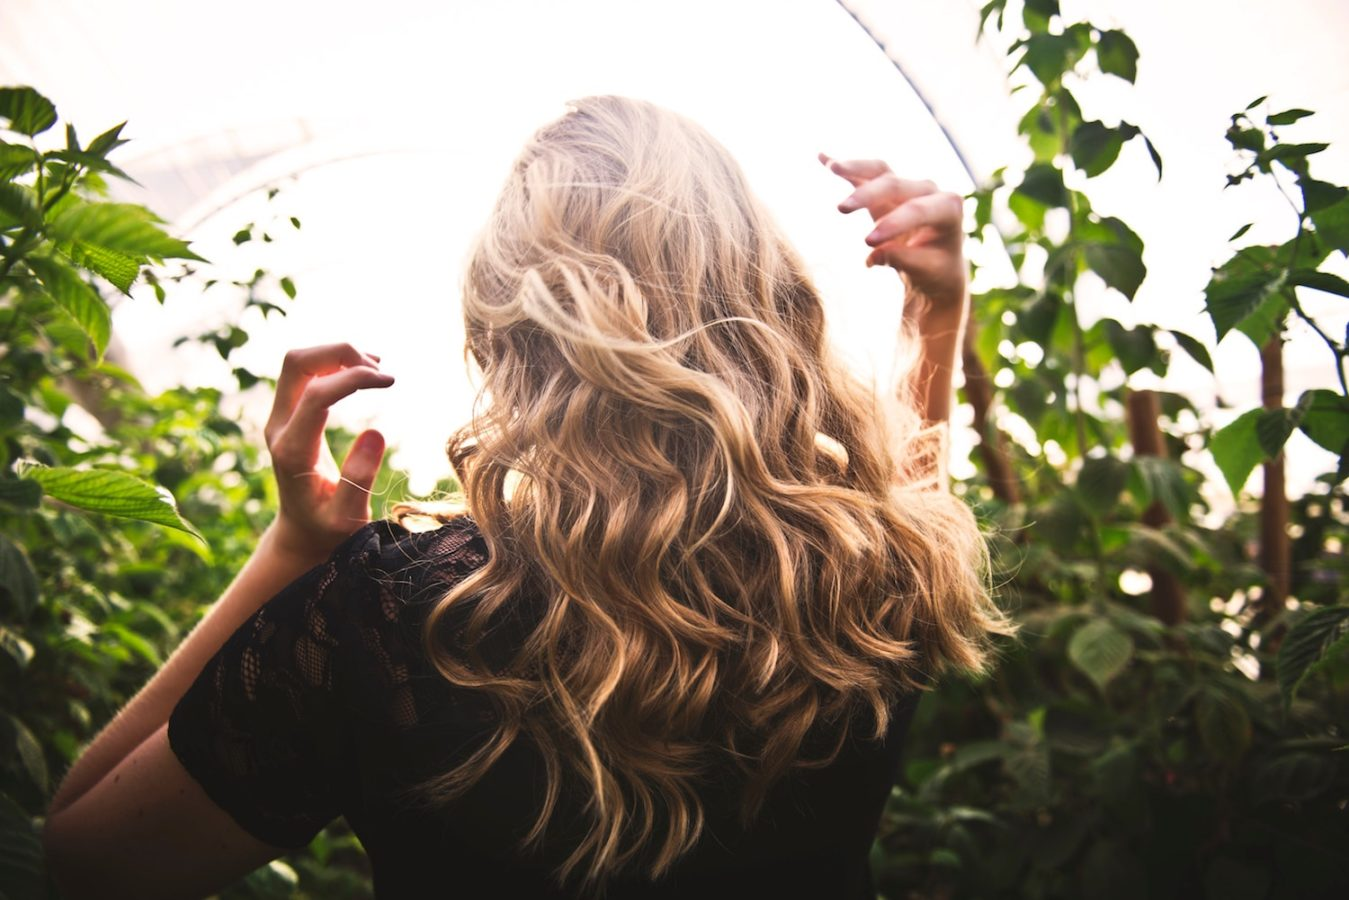 The best superfoods to eat for healthier and more luscious hair